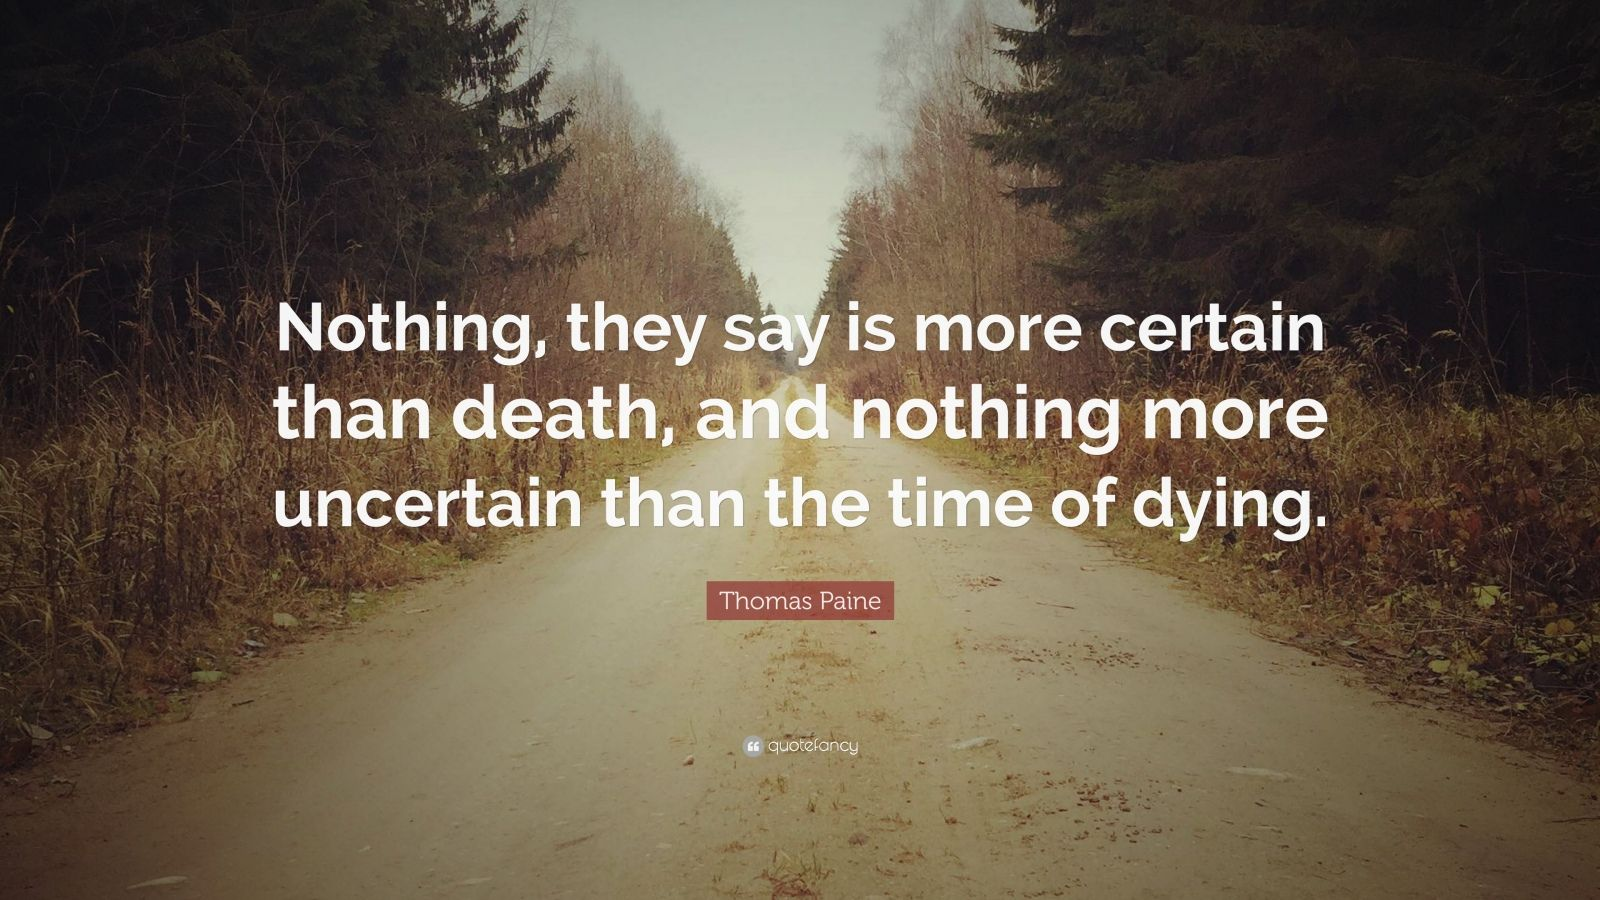 """Thomas Paine Quote: """"Nothing, they say is more certain than death, and nothing more uncertain than the time of dying."""""""